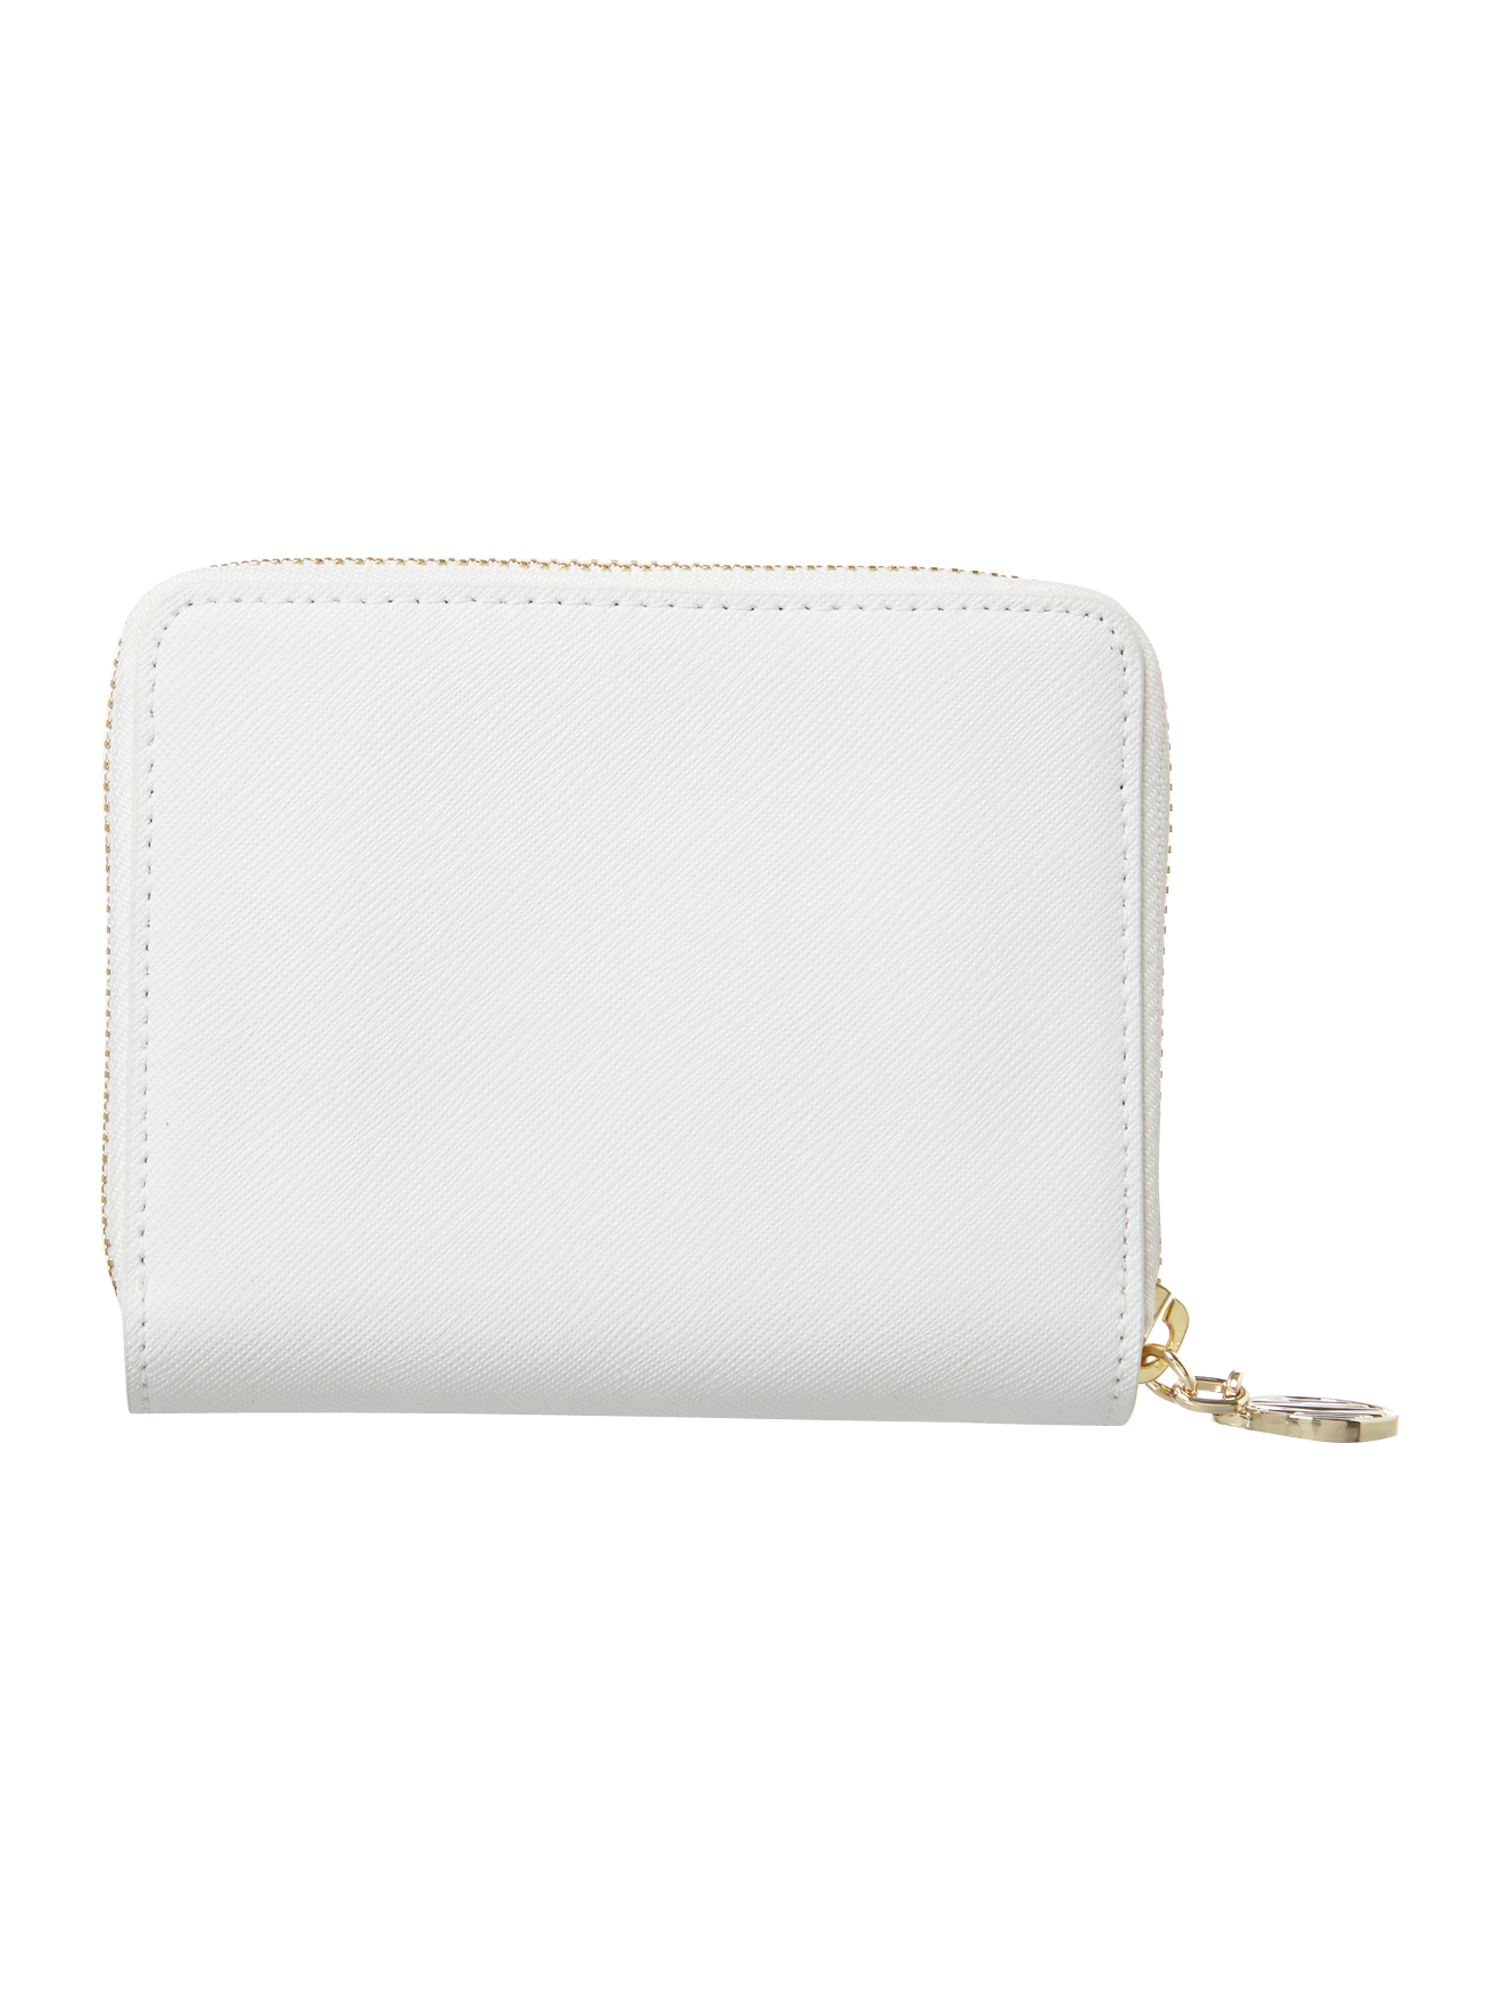 Saffiano white small zip around purse